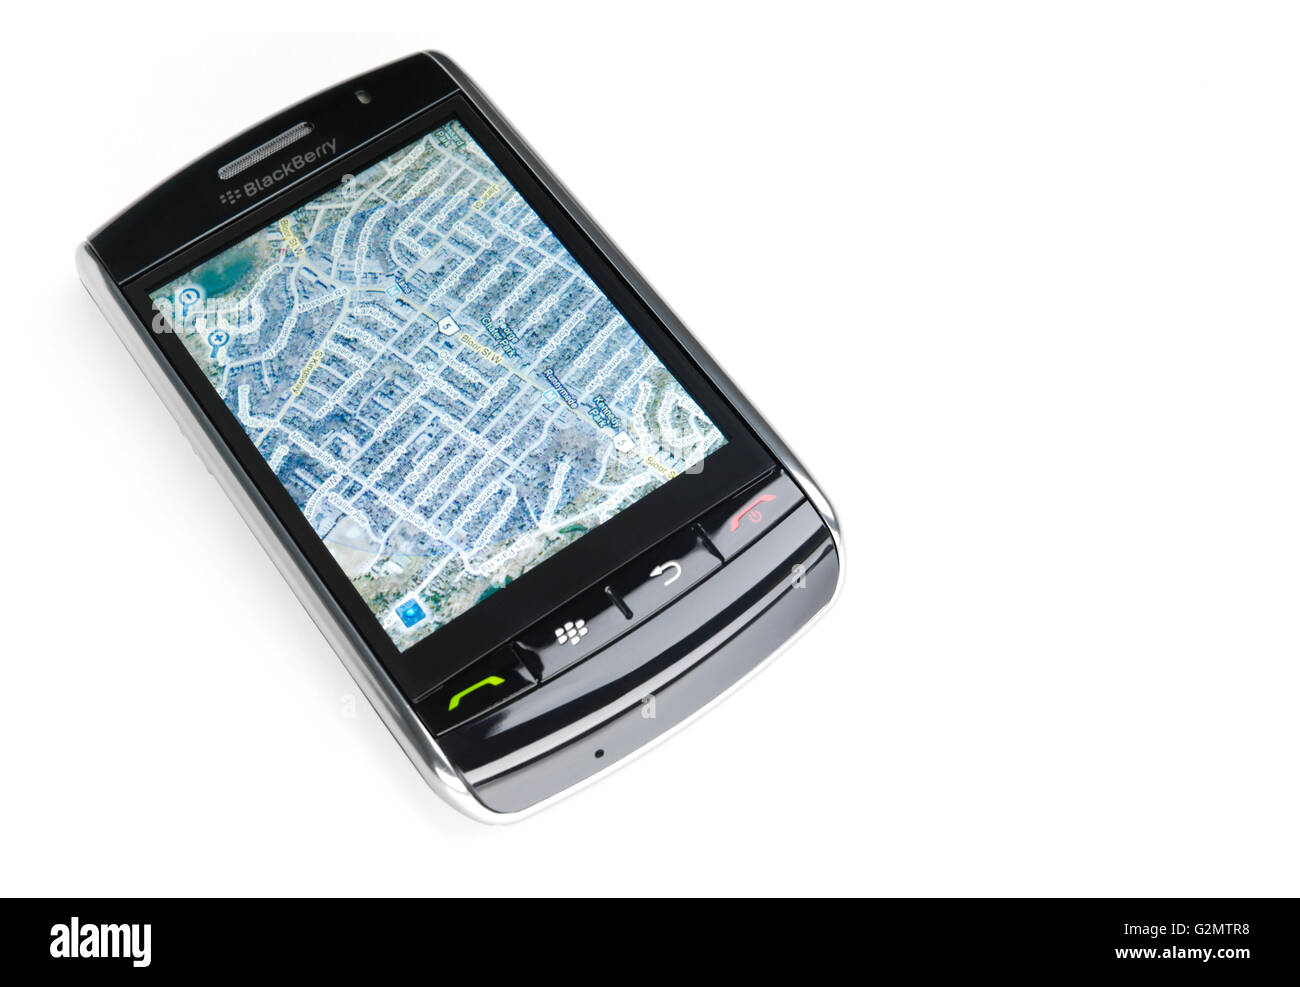 BlackBerry Storm 9530 touch screen smartphone with